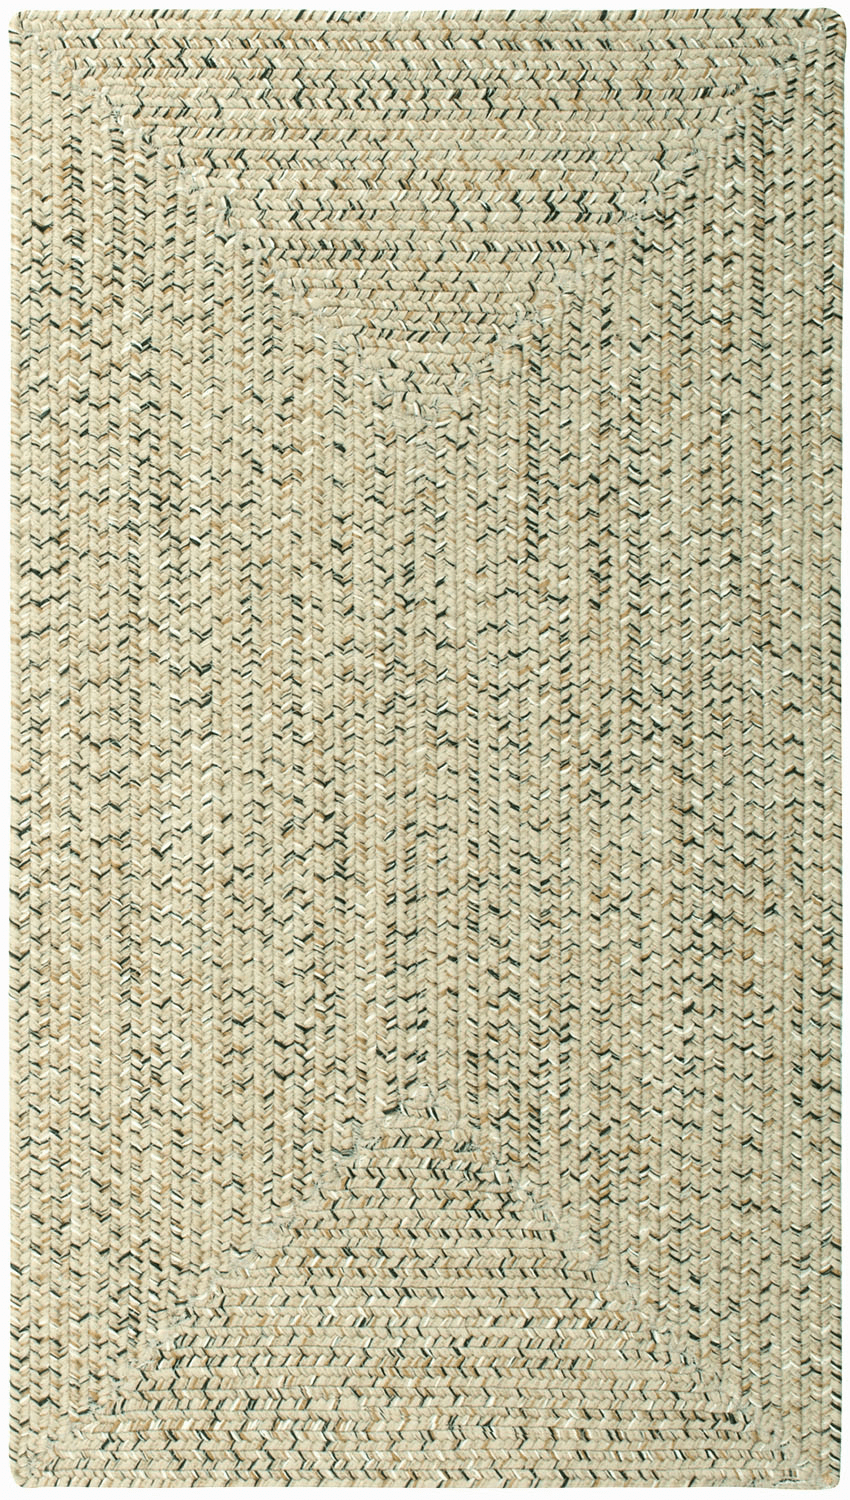 Hand-Braided Sandy Beach Rug